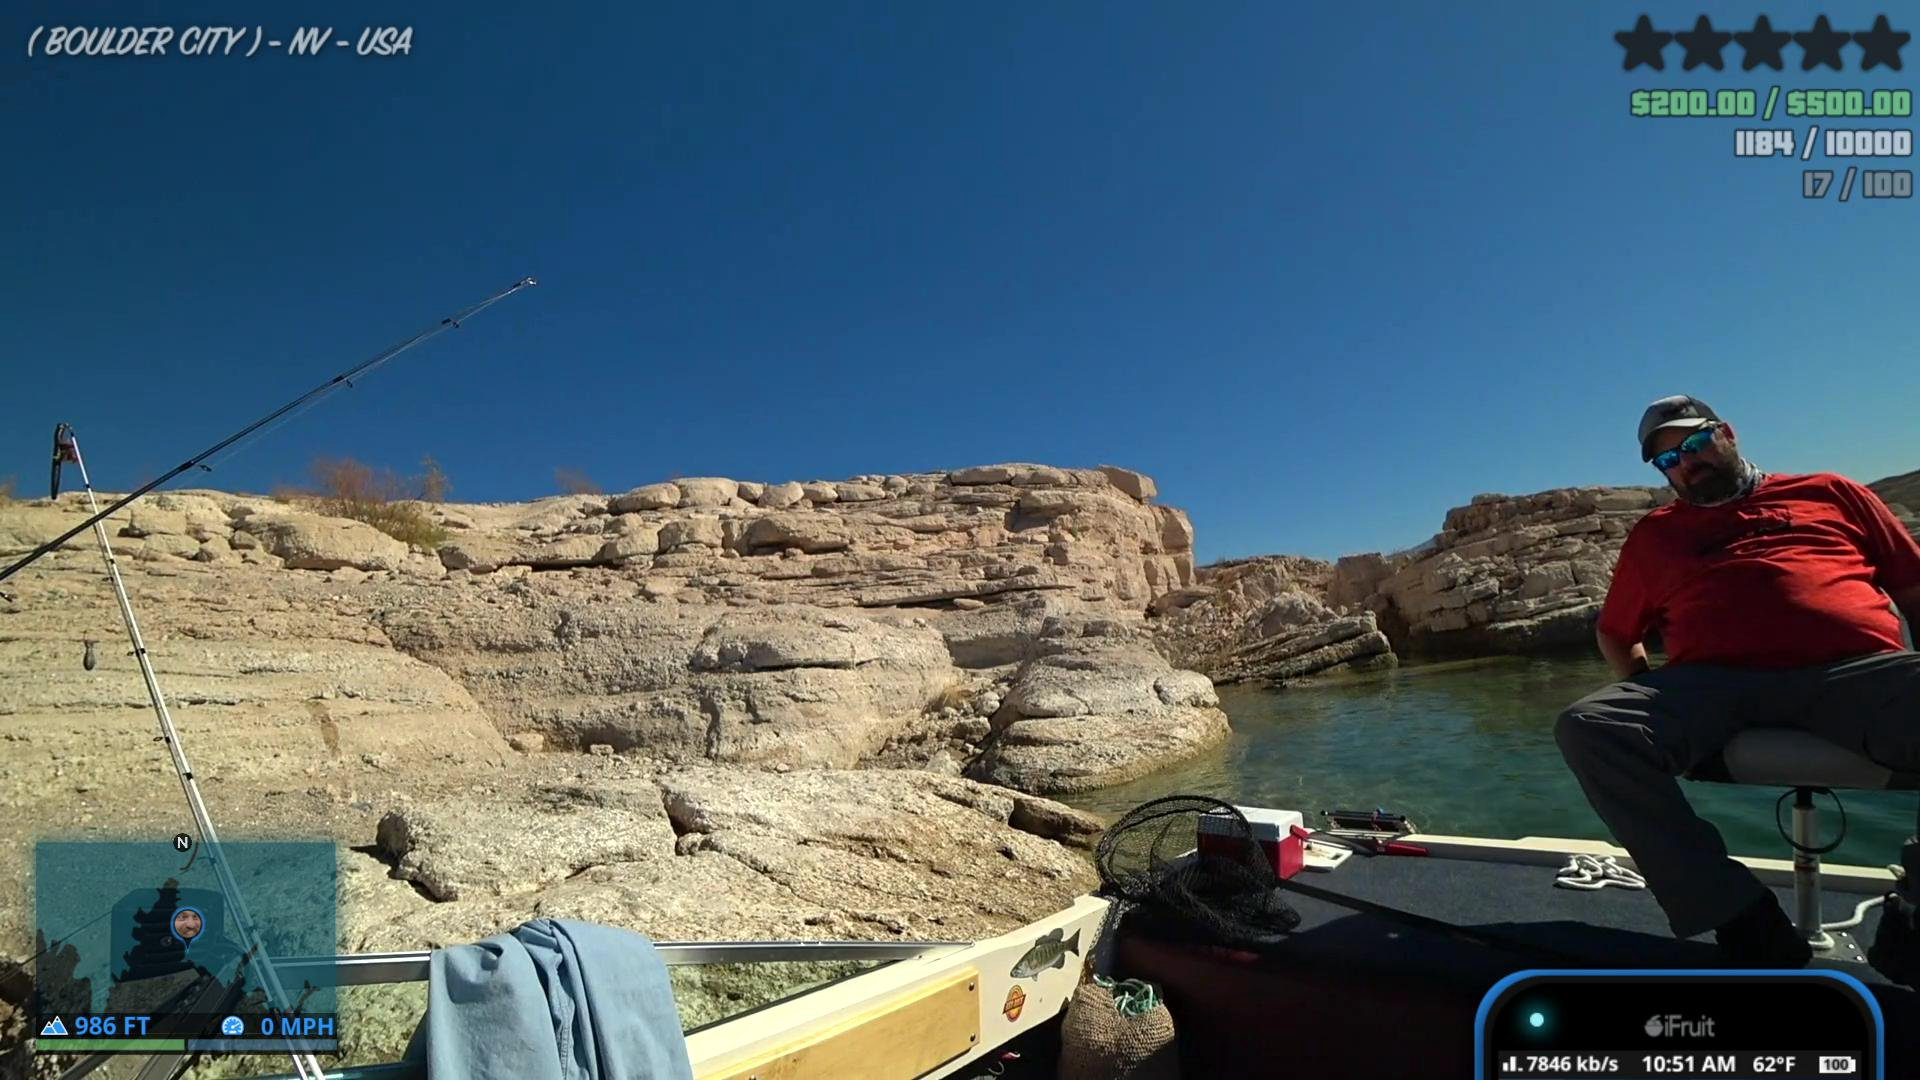 fishing-with-phuzzy-and-vegasdoglife-on-lake-mead-travel-outdoors-0300-https-t-co-2pibtzc8yh-https-t-co-ioeneozled